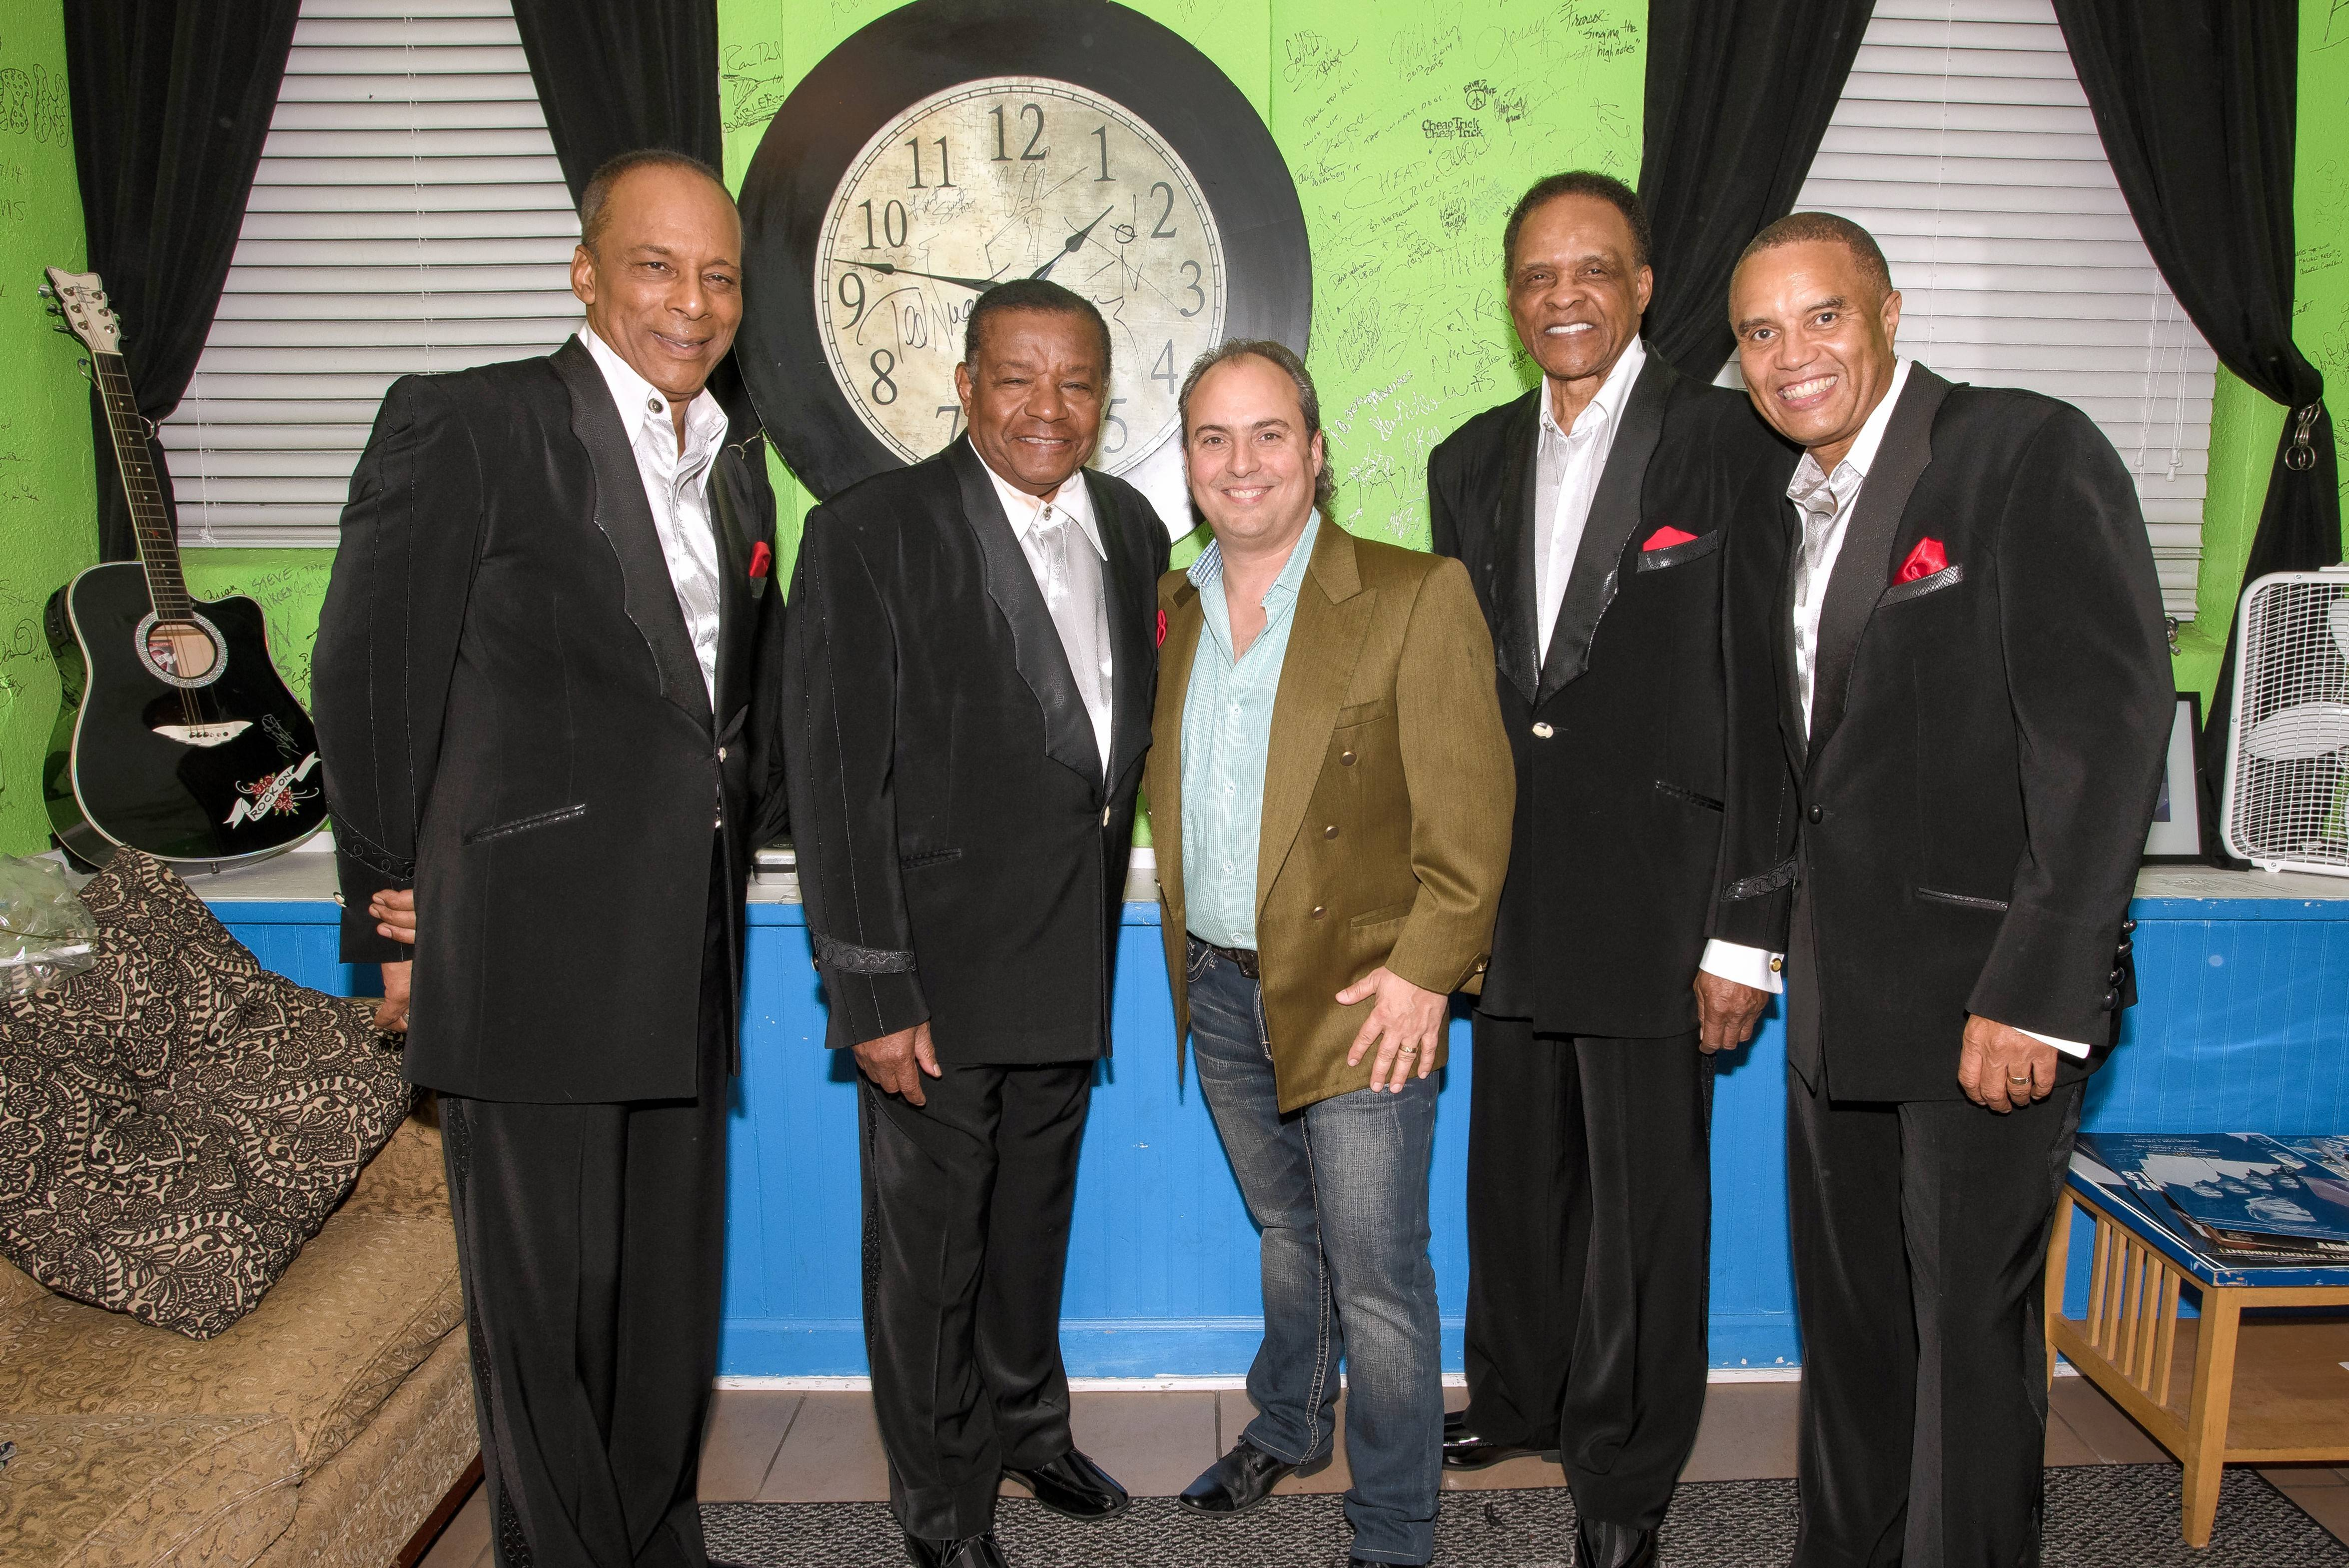 Little Anthony (second from left) and the Imperials pause to take a photograph with Arcada Theatre owner Ron Onesti prior to their recent show in St. Charles.